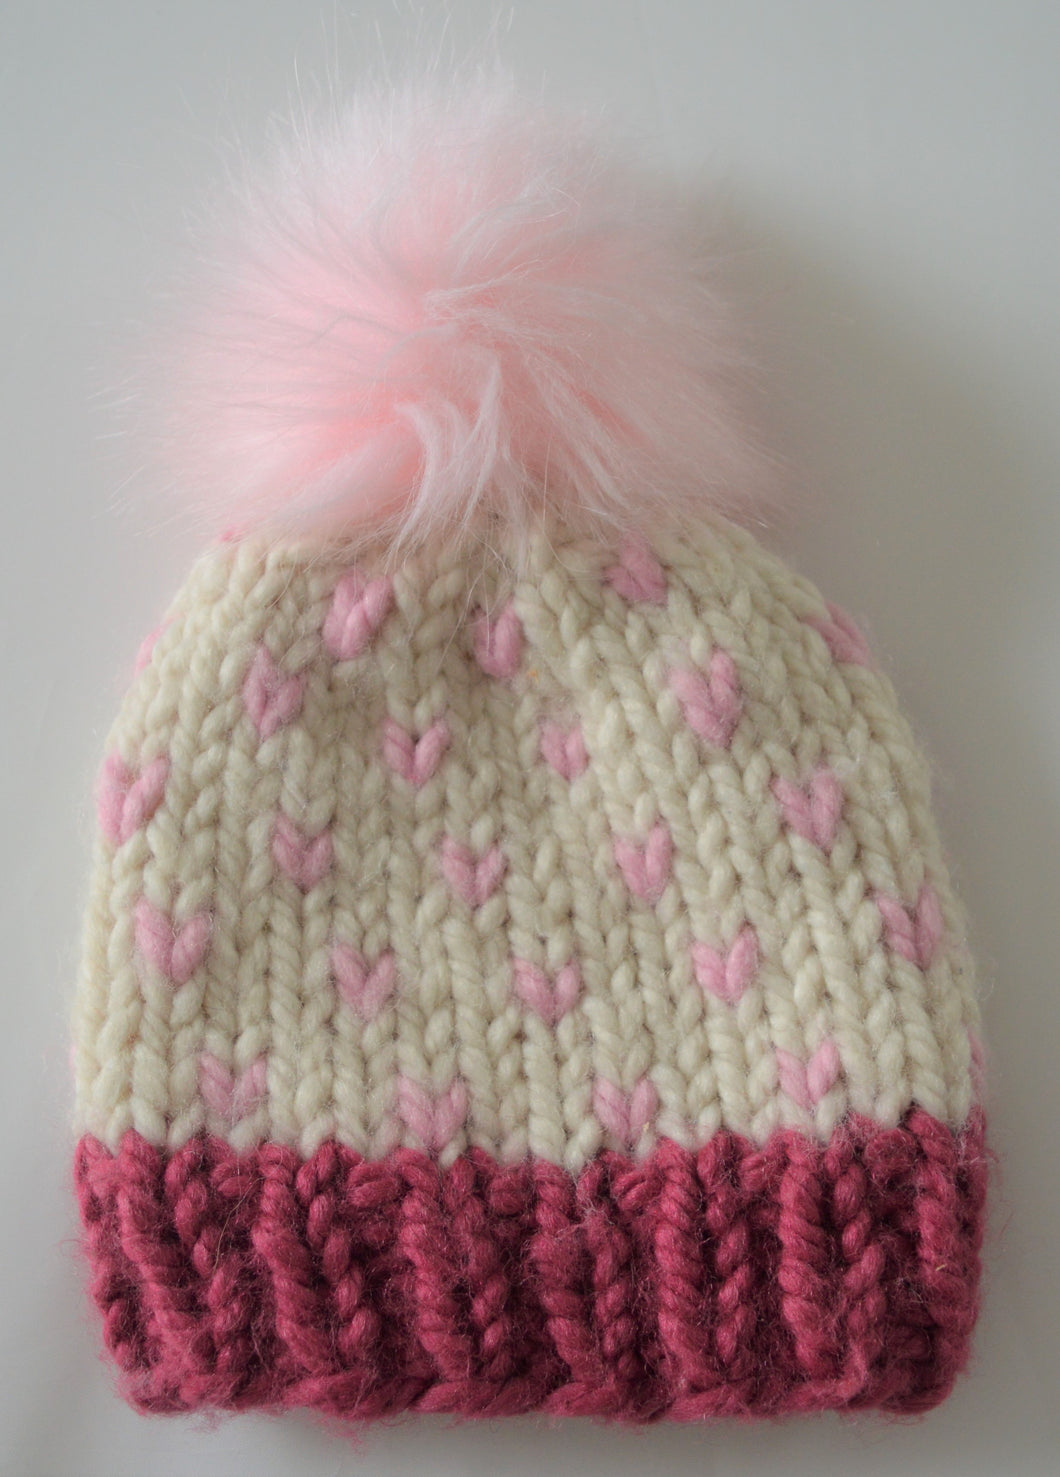 Cream and Burgundy with Pink Hearts Knit Hat and Pink Pom Pom